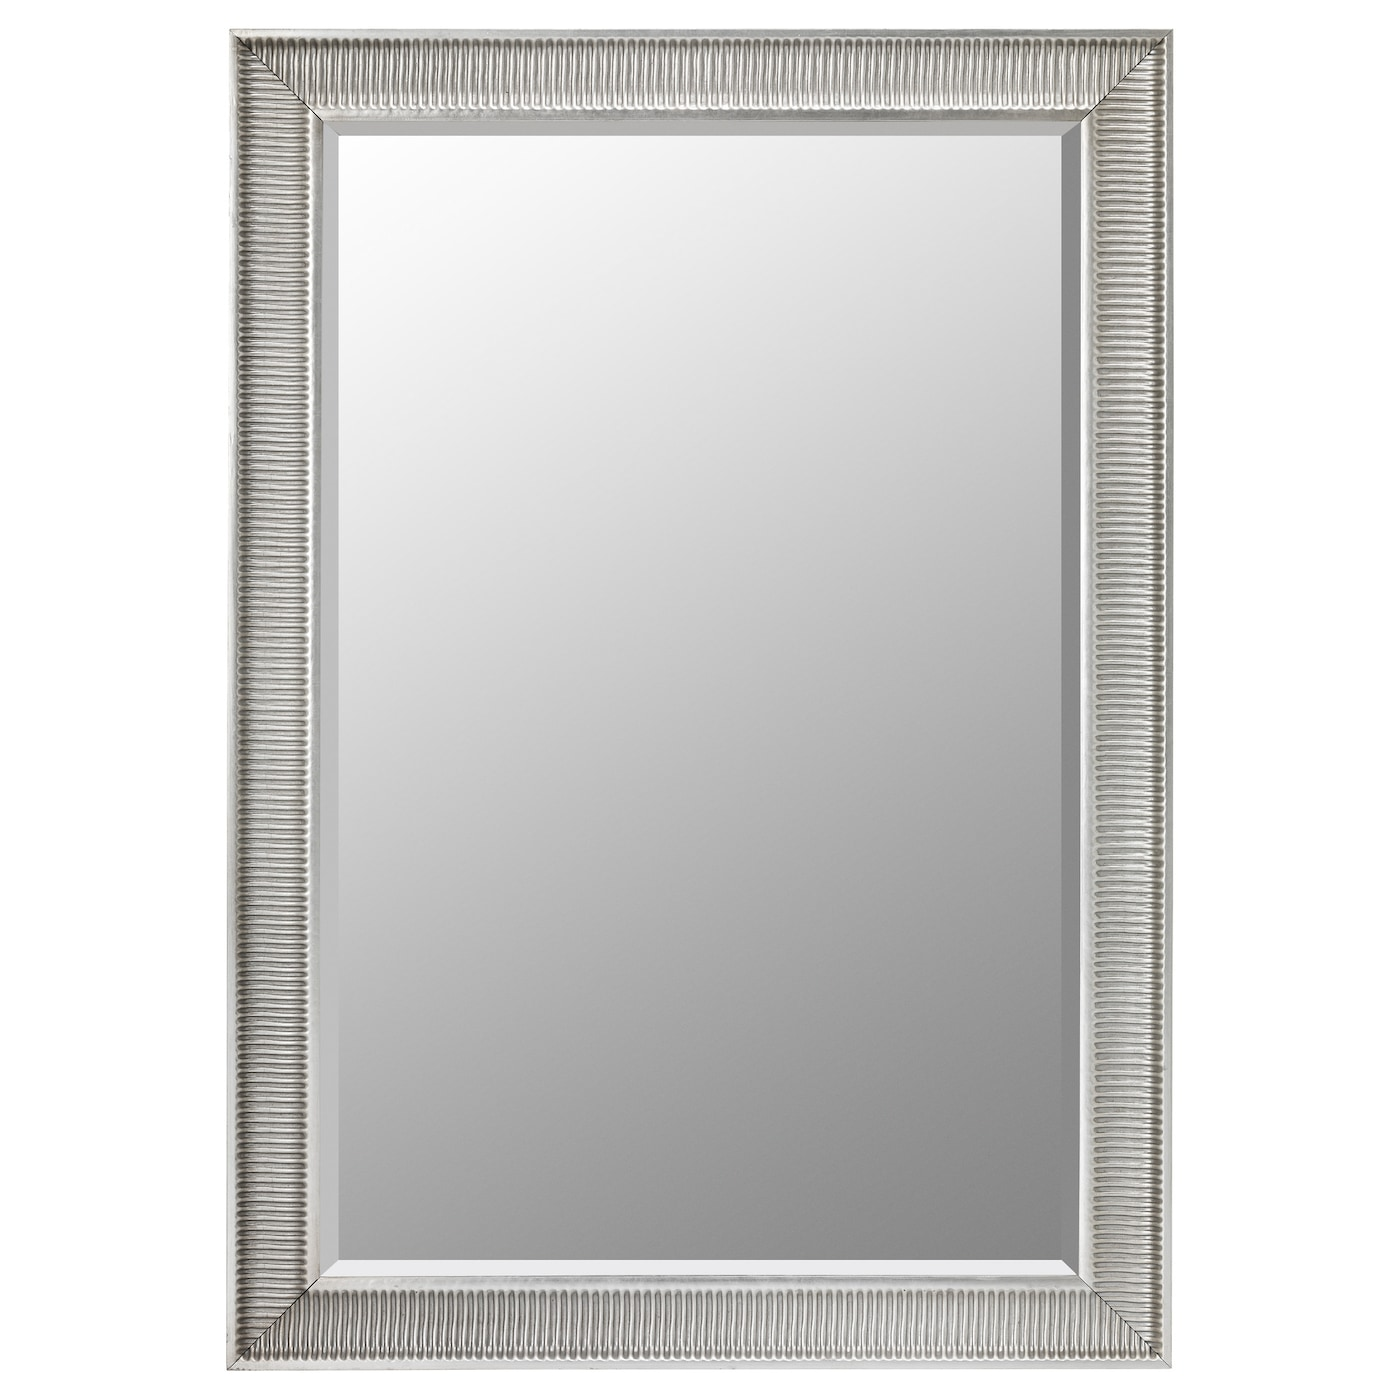 songe mirror silver colour 91x130 cm ikea